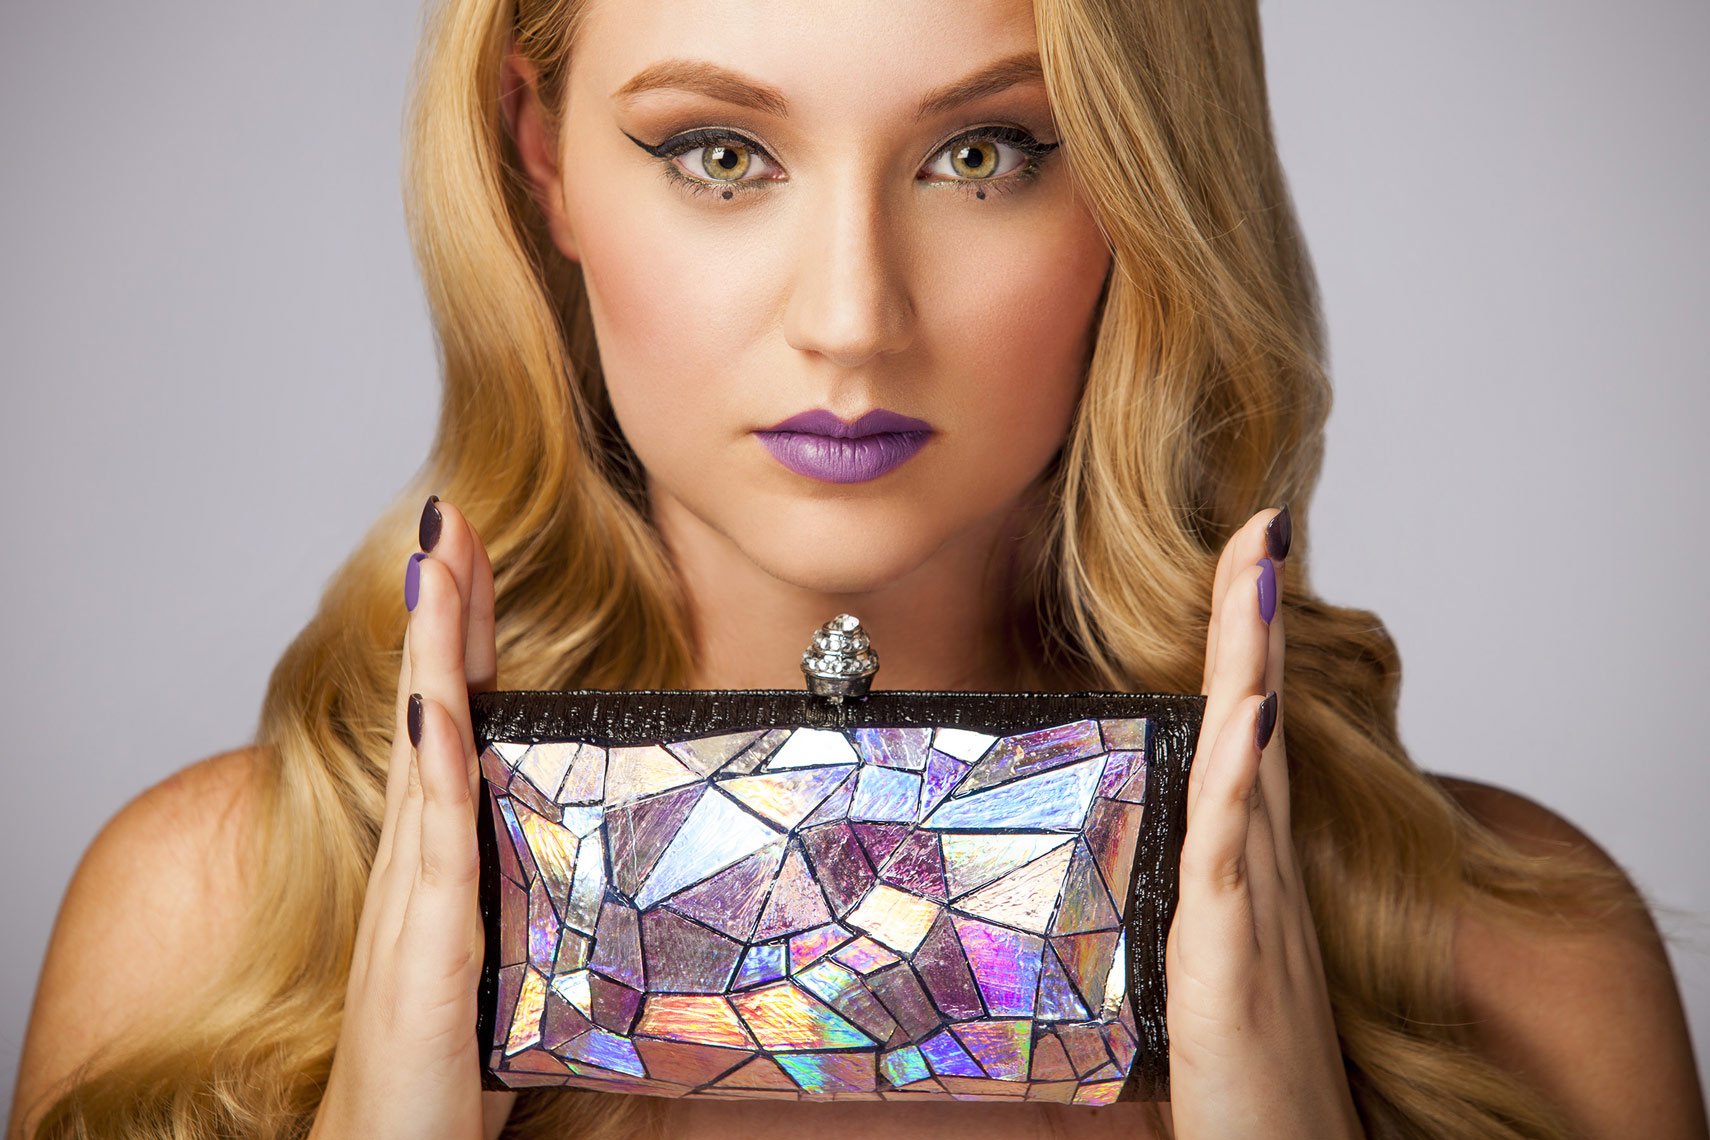 Mercedes Brunelli Clutch, Ian Jacob Photography Beauty Photography, Studio Photography, Beauty Model, West Palm Beach, Fort Lauderdale, Miami, Florida